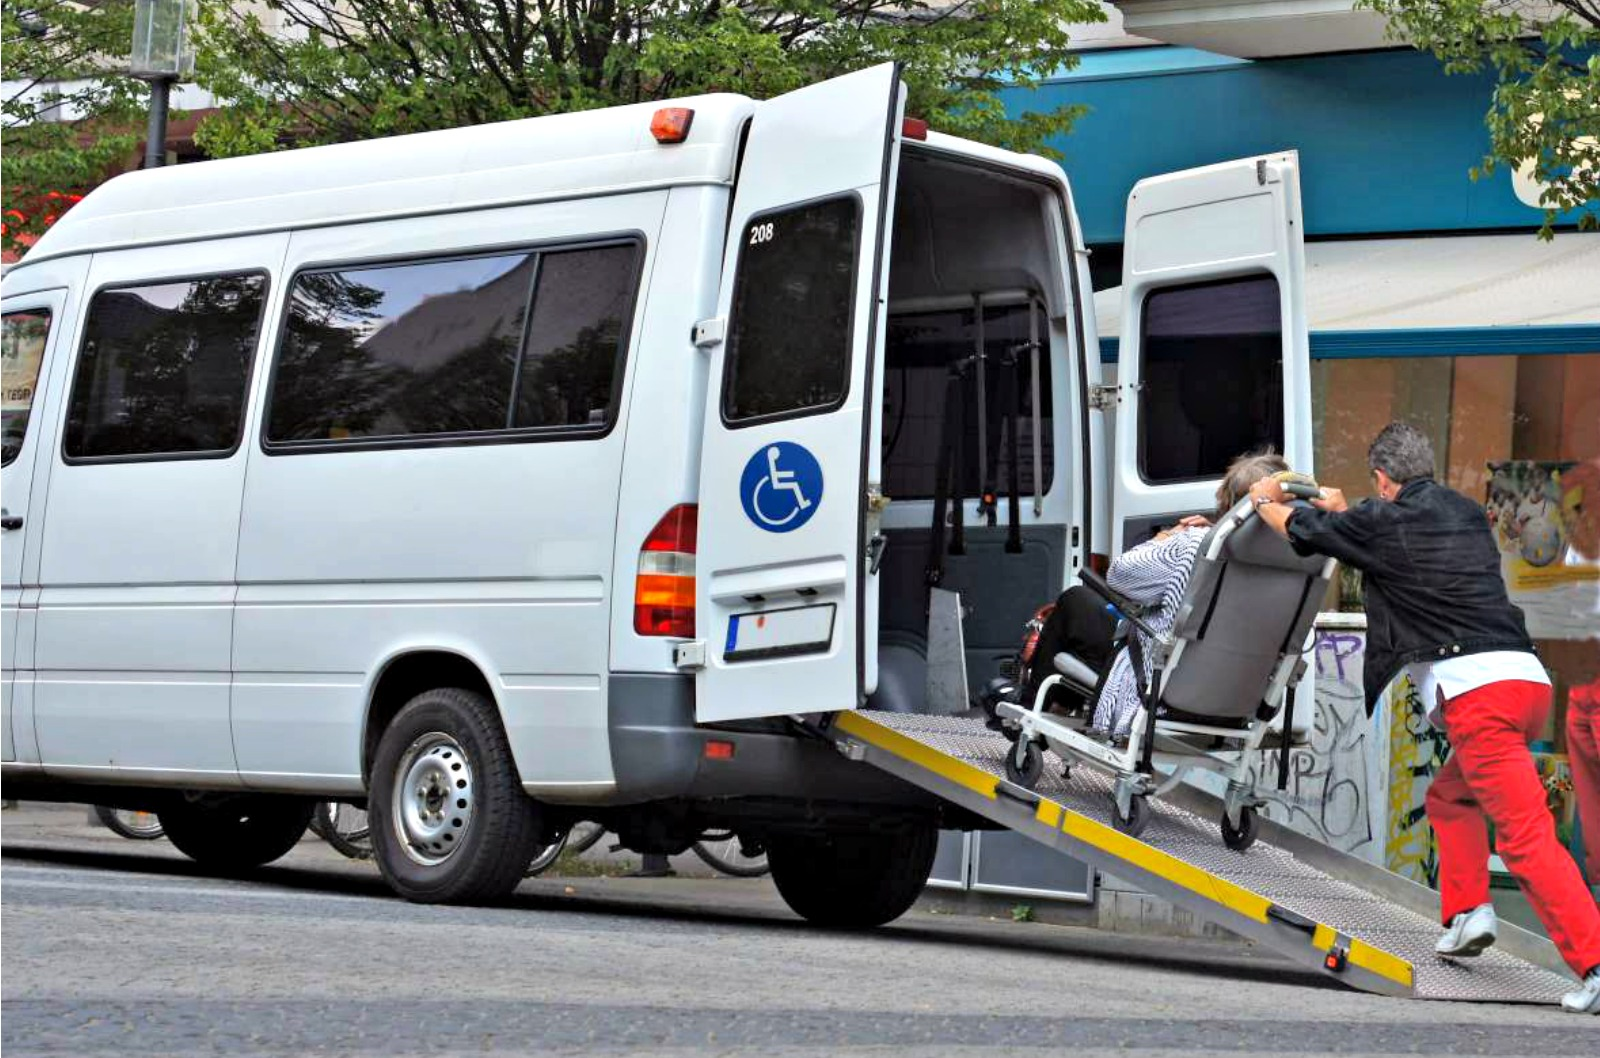 Unique Latching System Keeps Wheelchair Passengers Secure During Transit